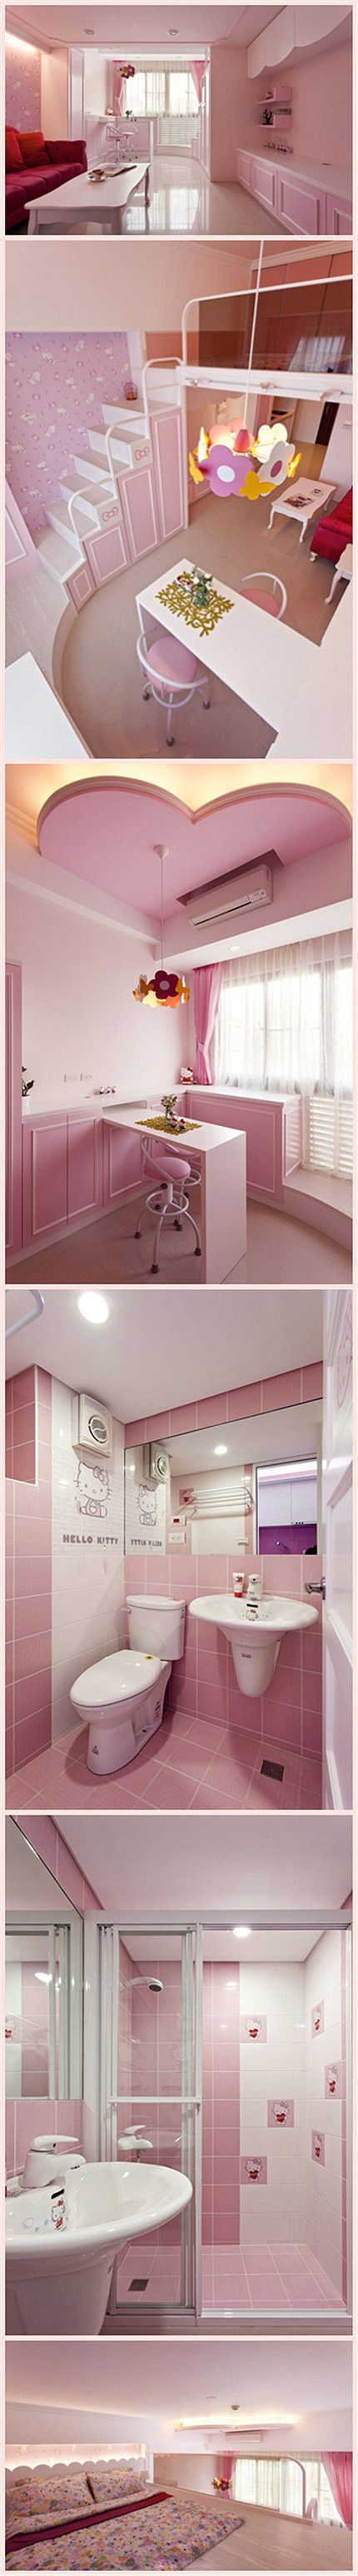 Duplex Hello Kitty nido I don't even like pink like that but I would totally live here!